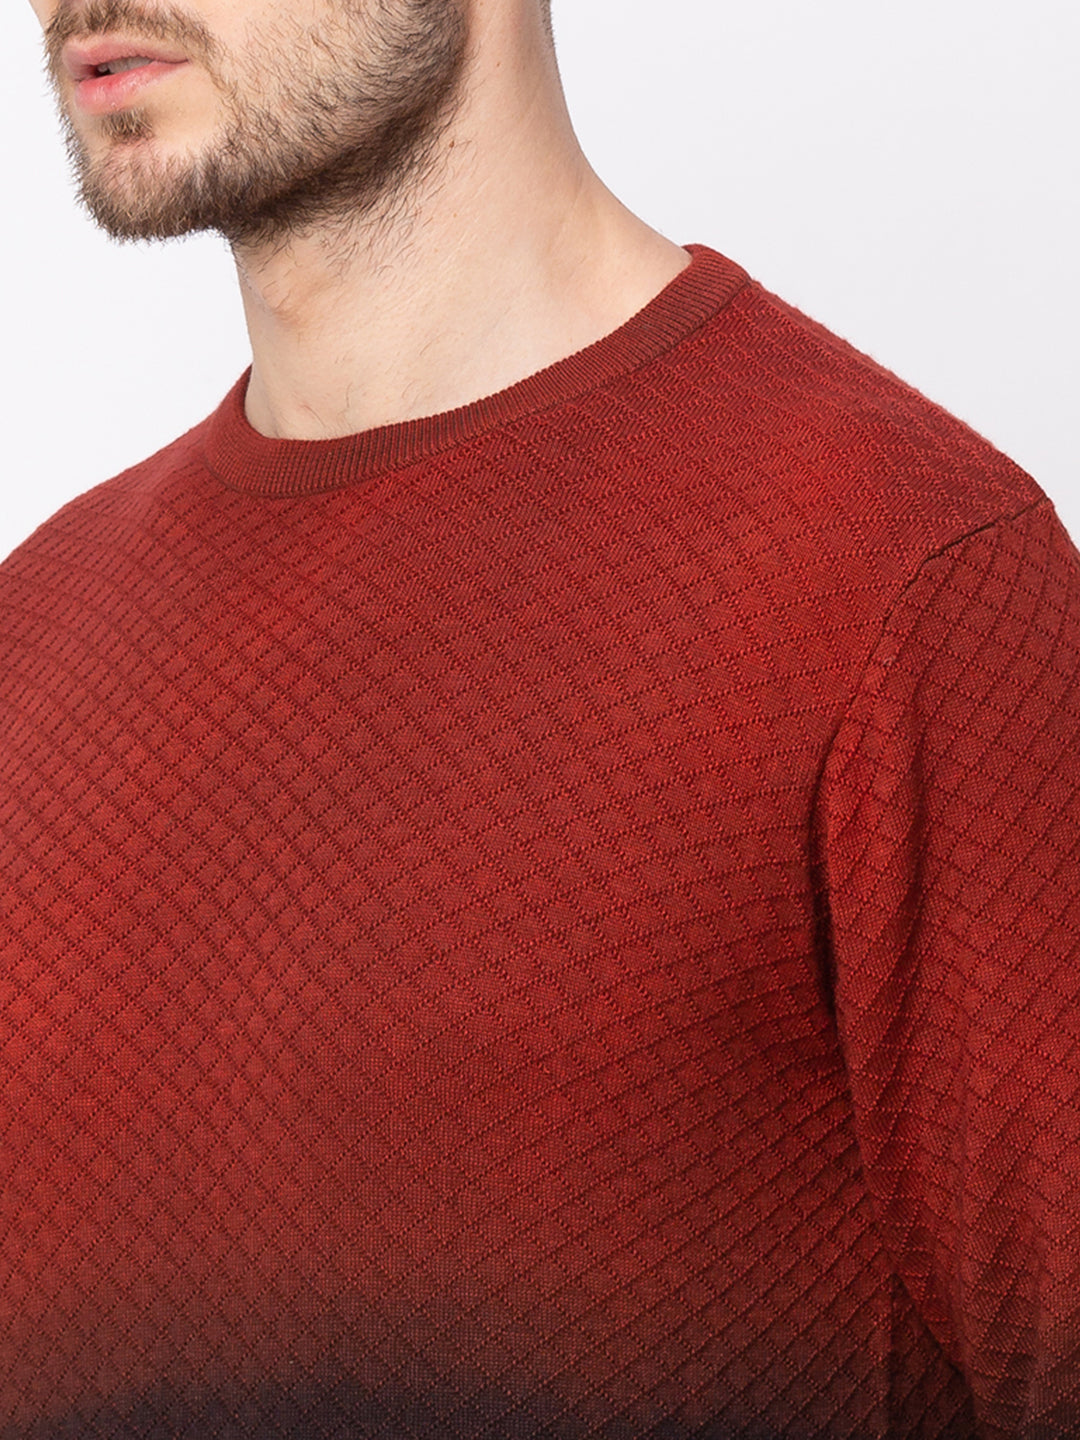 Globus Maroon Colourblocked Pullover Sweater-4